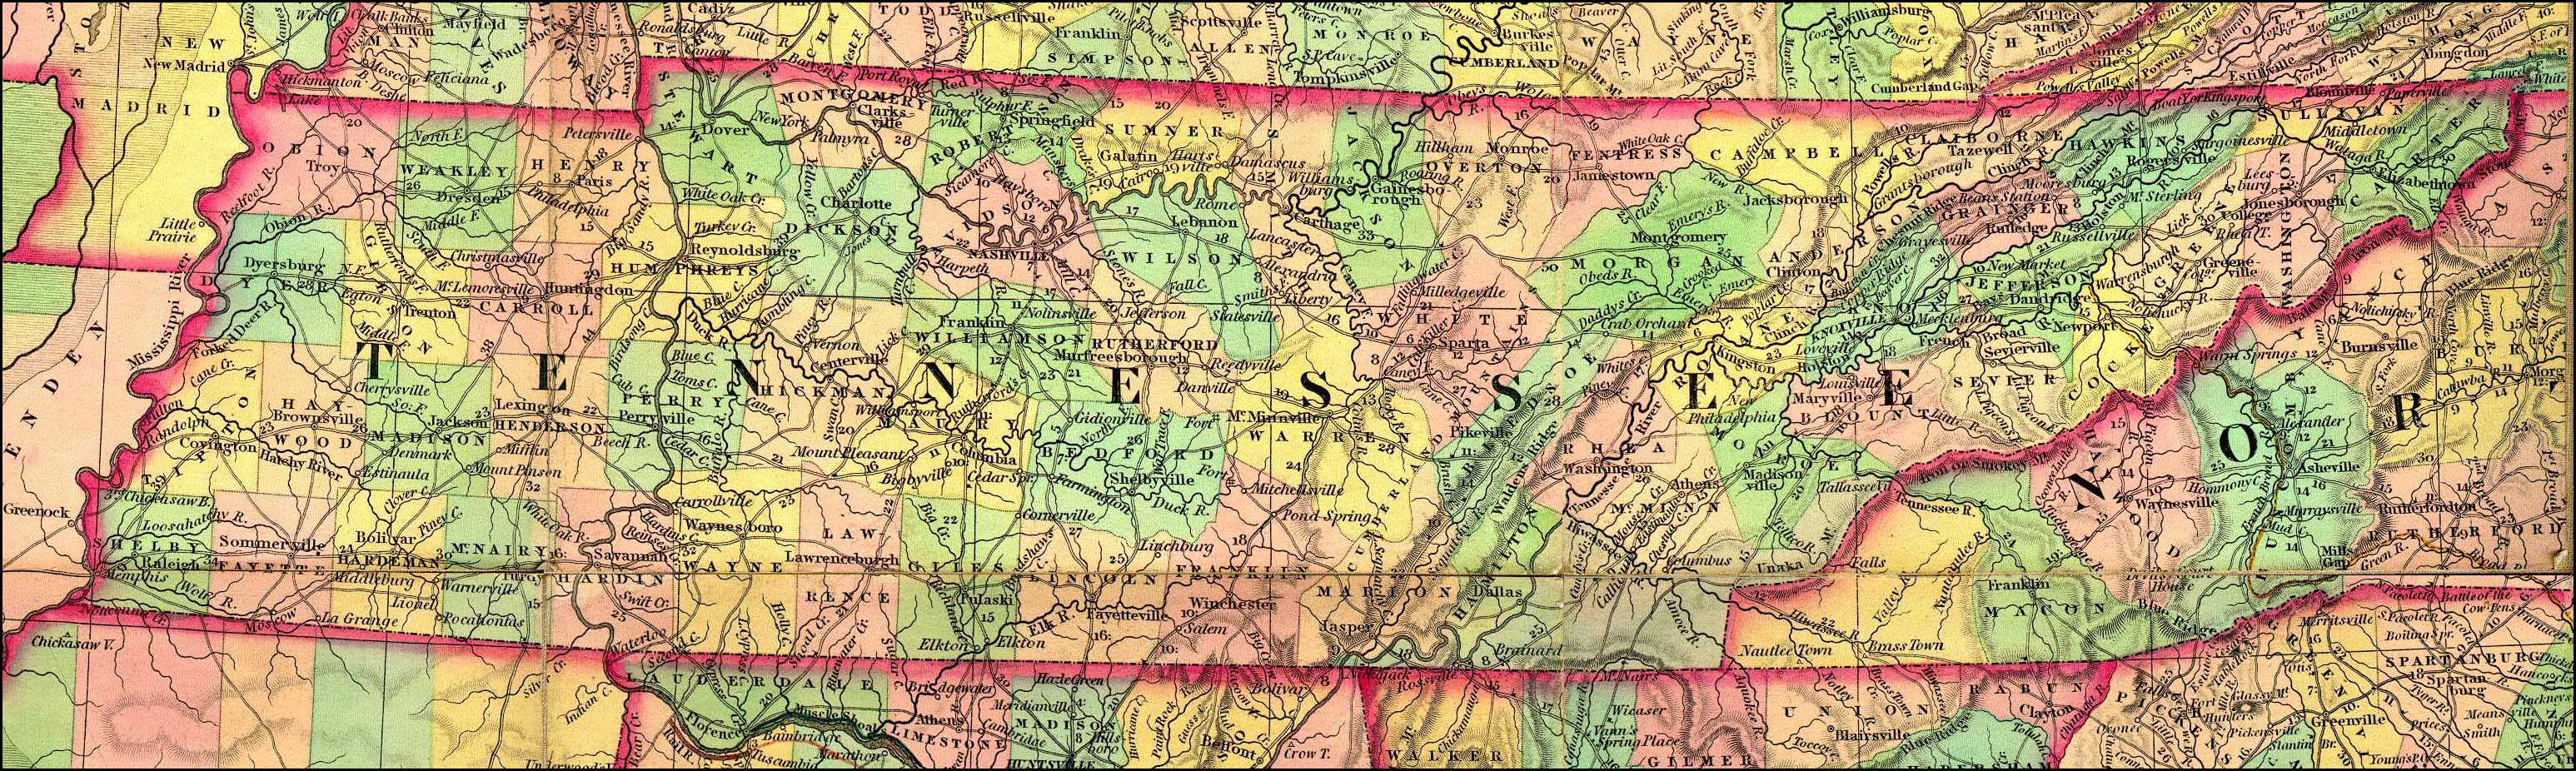 tennessee maps tennessee digital map library table of contents  - tennessee state maps